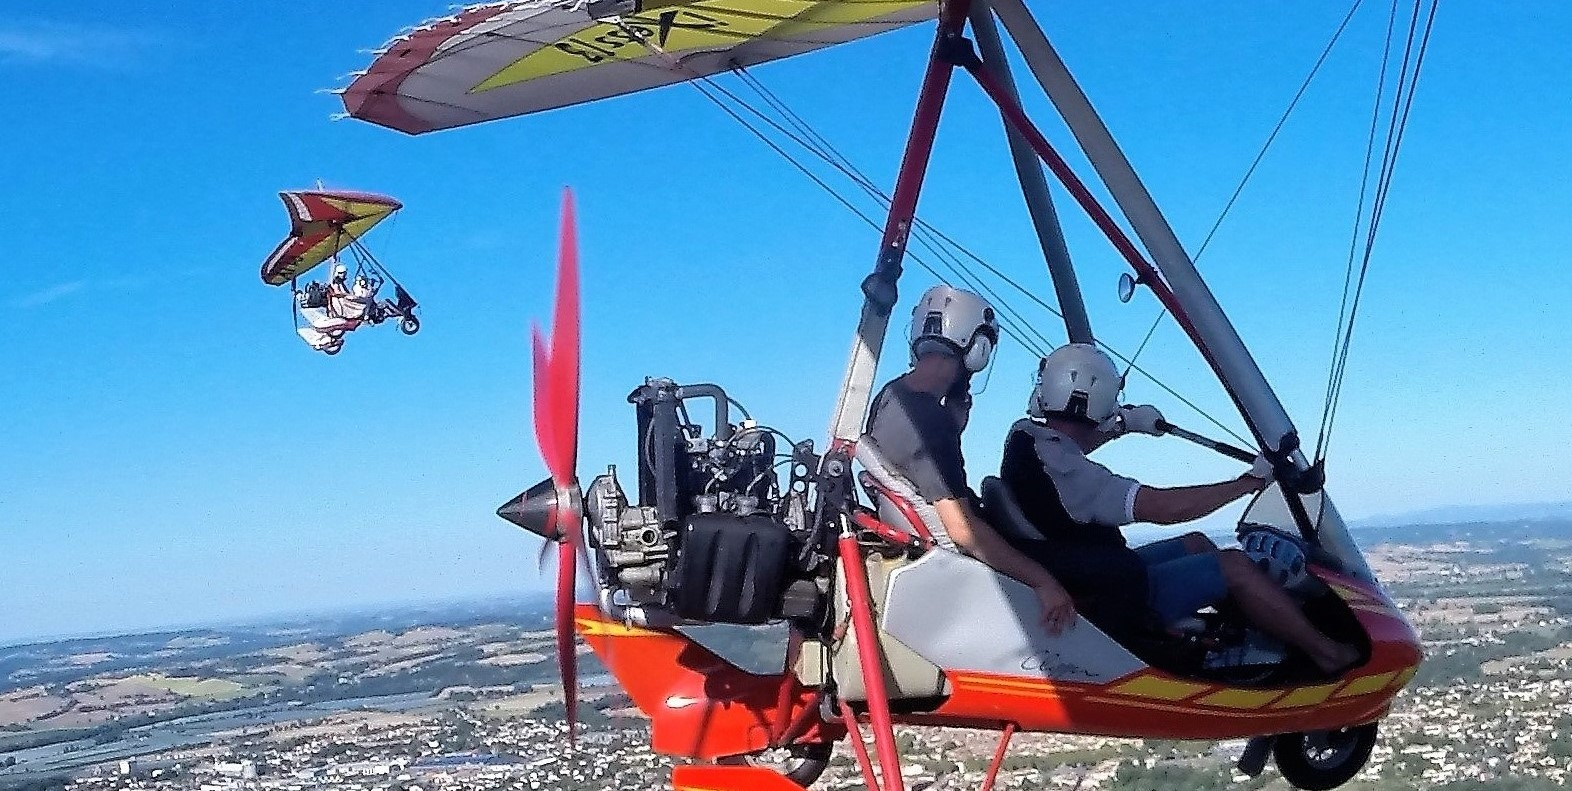 Ultralight Aircraft Base Toulouse and Tarn in France